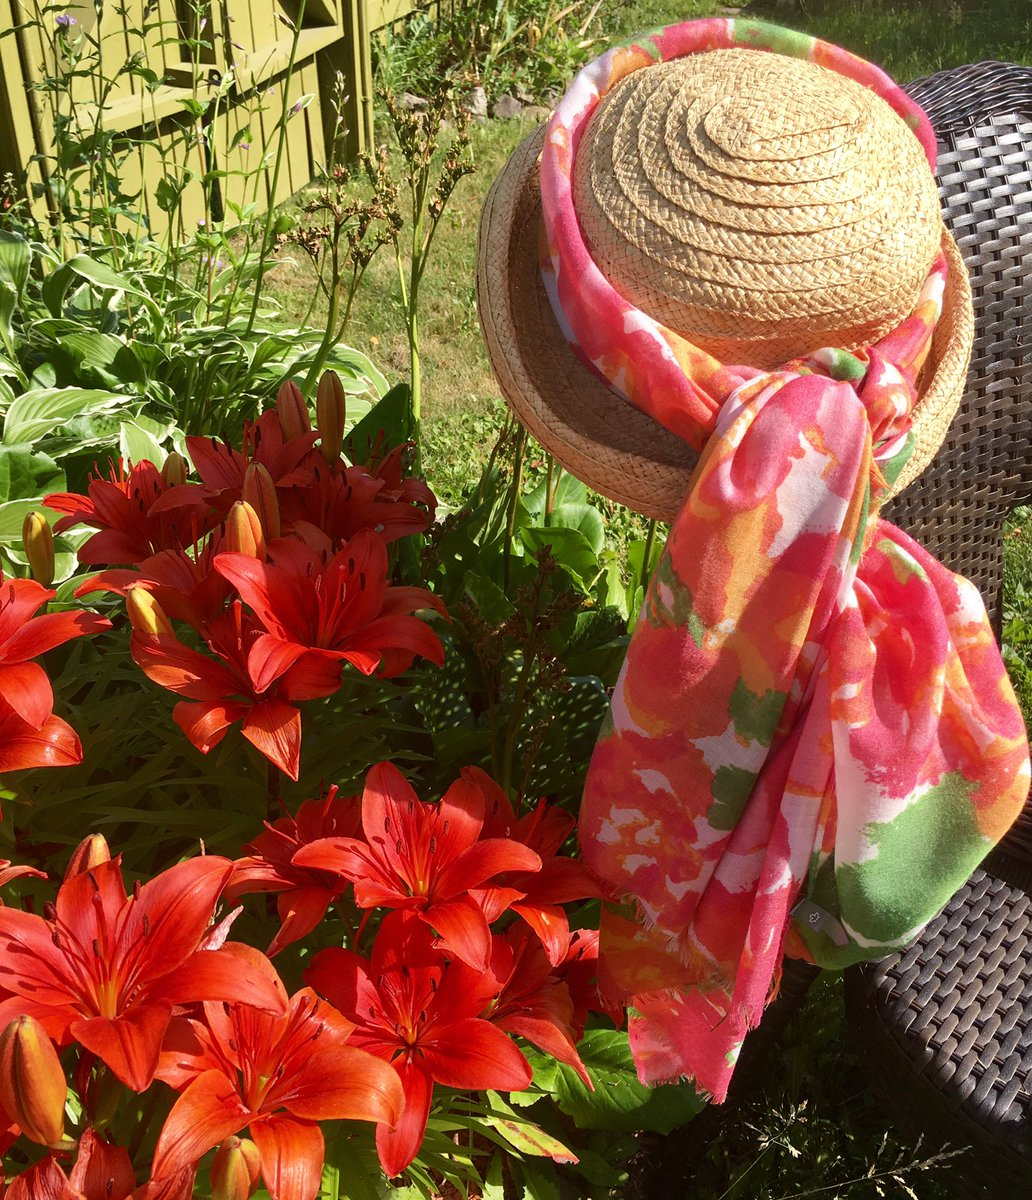 I love to wander in my  garden so sweet ....then sit amongst the lilies  there at my feet  #WaitingForGuests #BeautyDay #ExploreNL #Summer<br>http://pic.twitter.com/X3wRZvhfSO